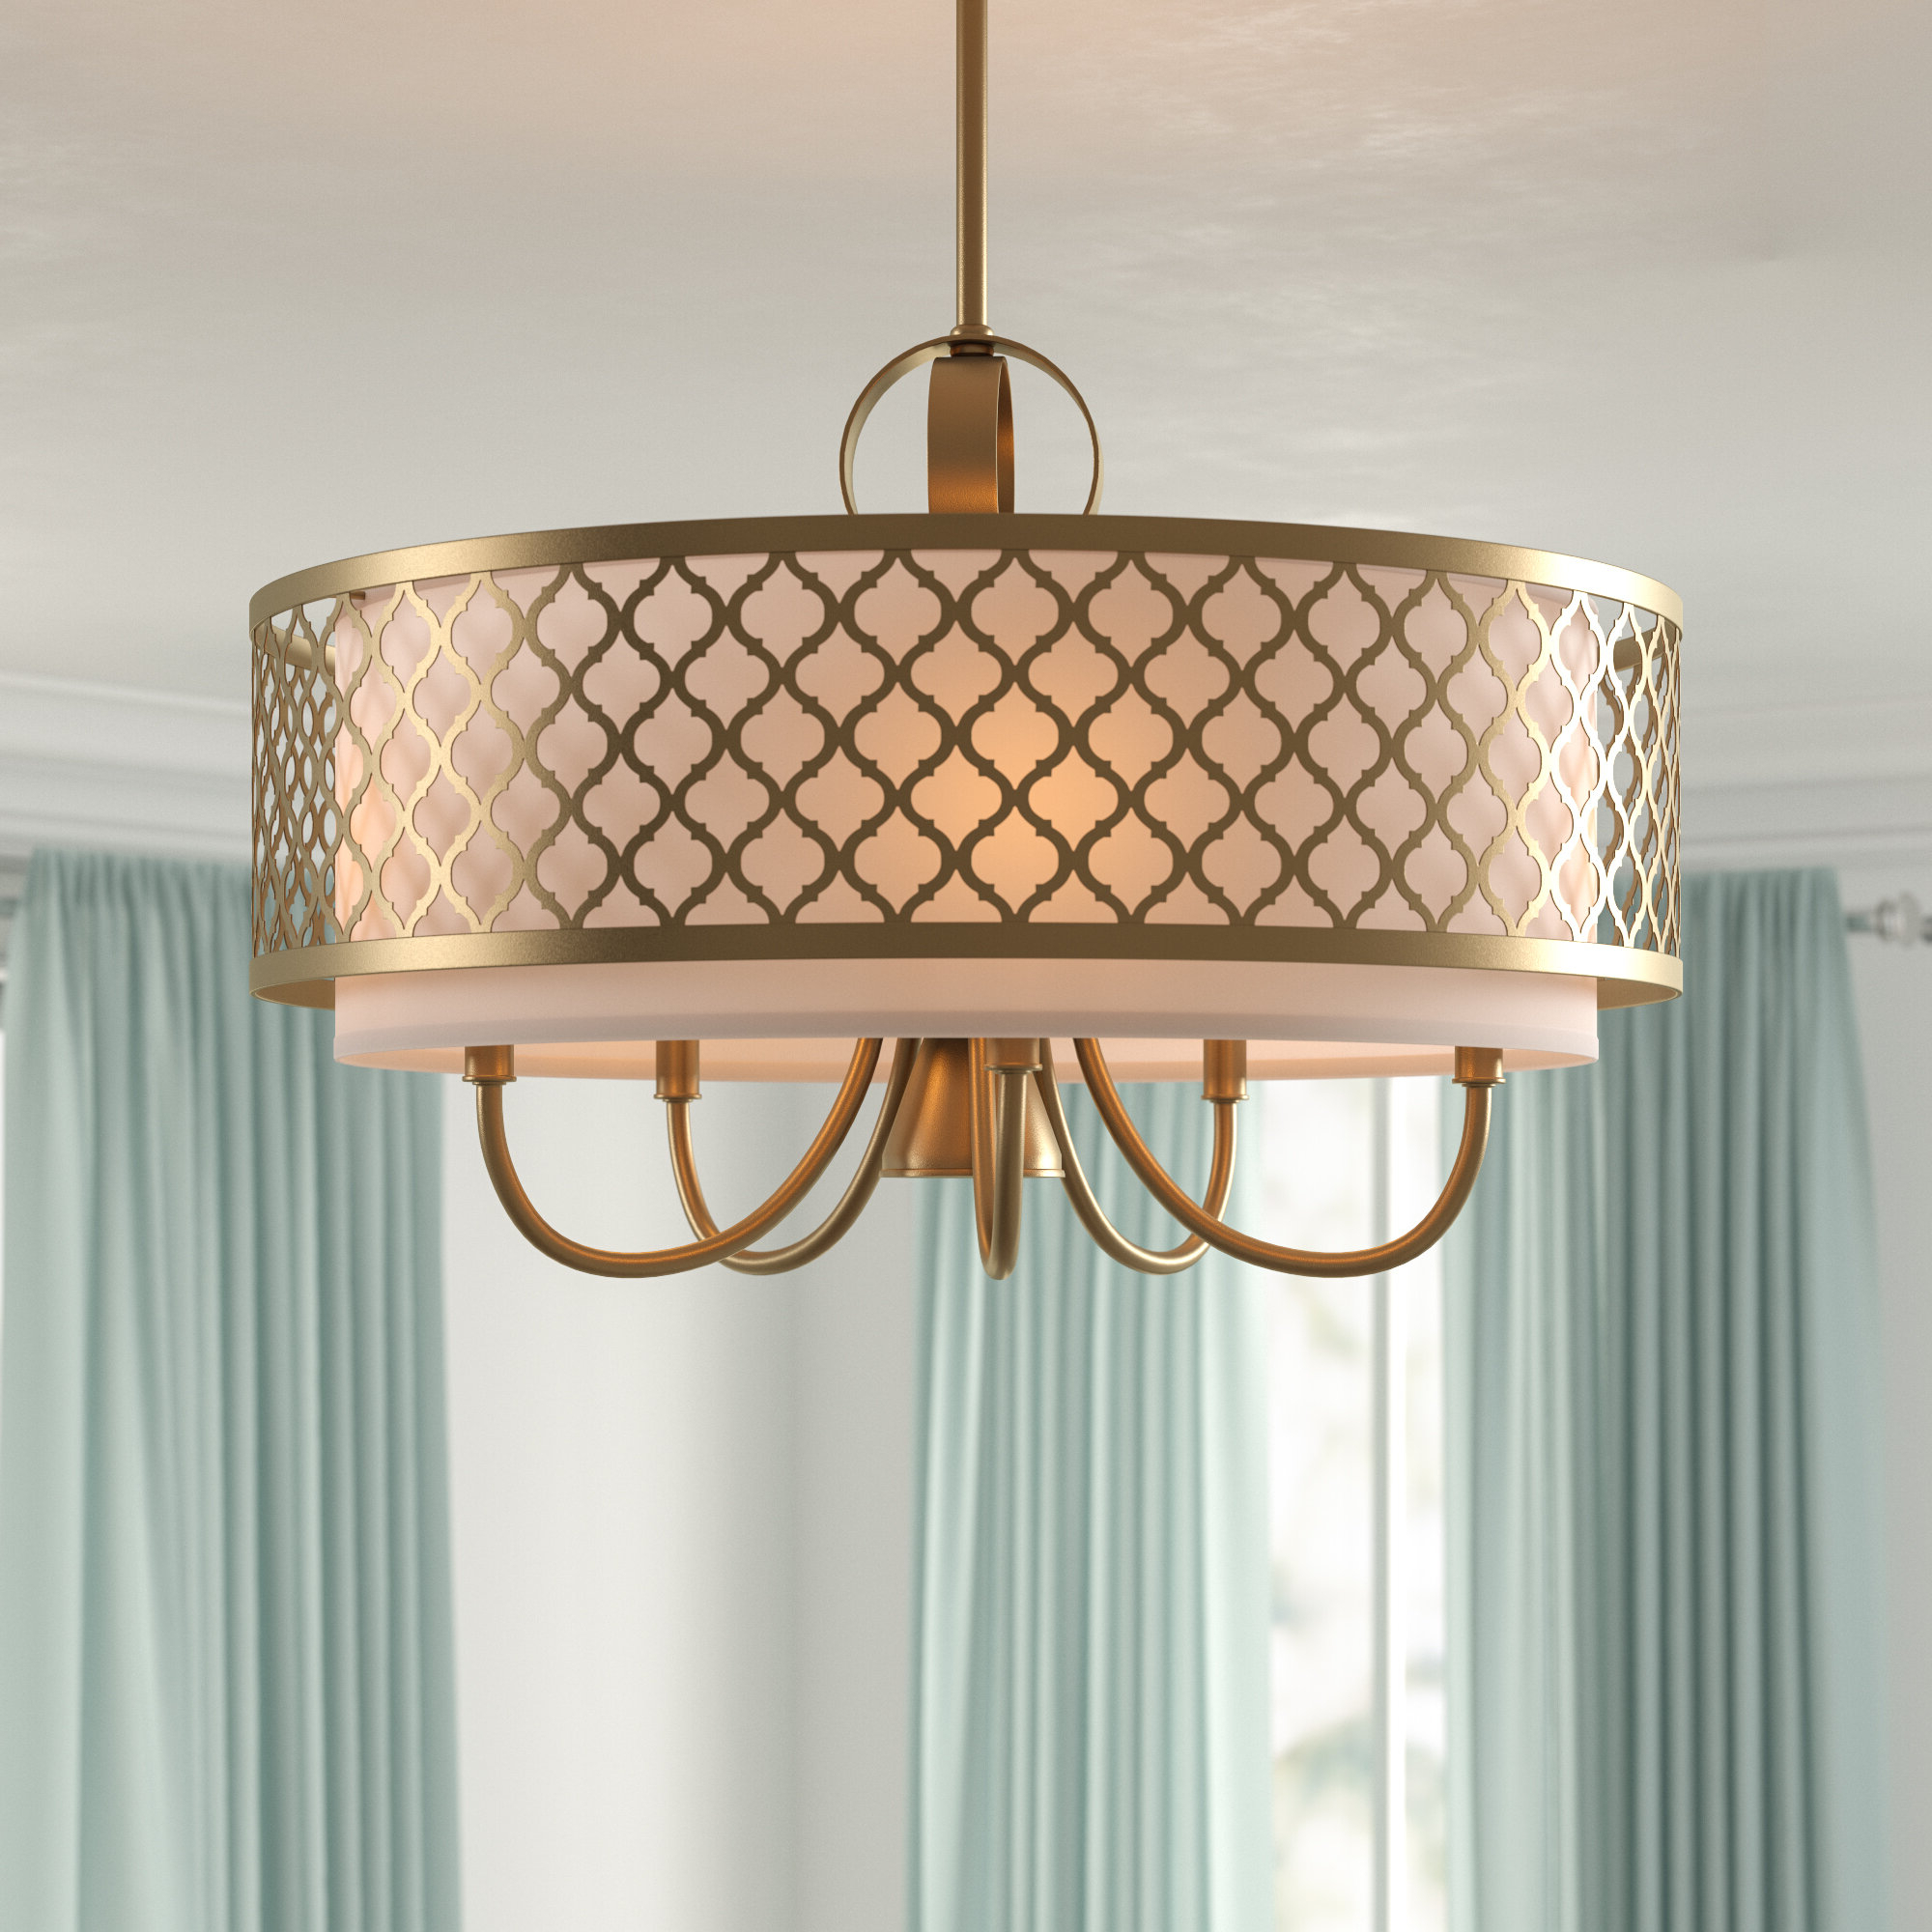 Harlan 5 Light Drum Chandeliers For Most Up To Date Tymvou 6 Light Drum Chandelier (Gallery 19 of 25)